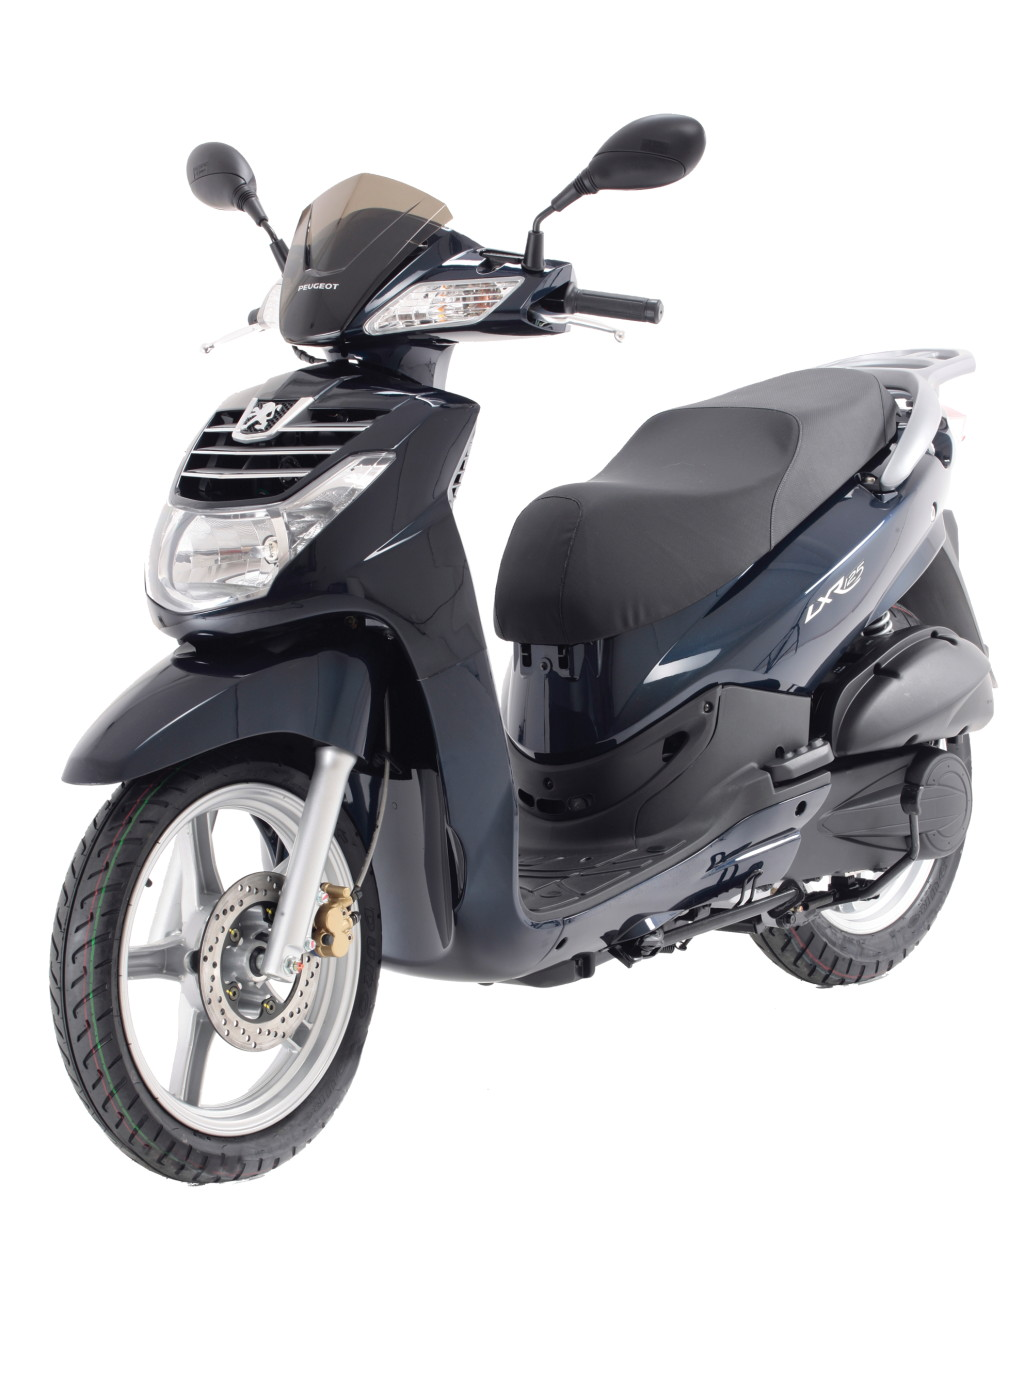 peugeot lxr 200 scooternet. Black Bedroom Furniture Sets. Home Design Ideas